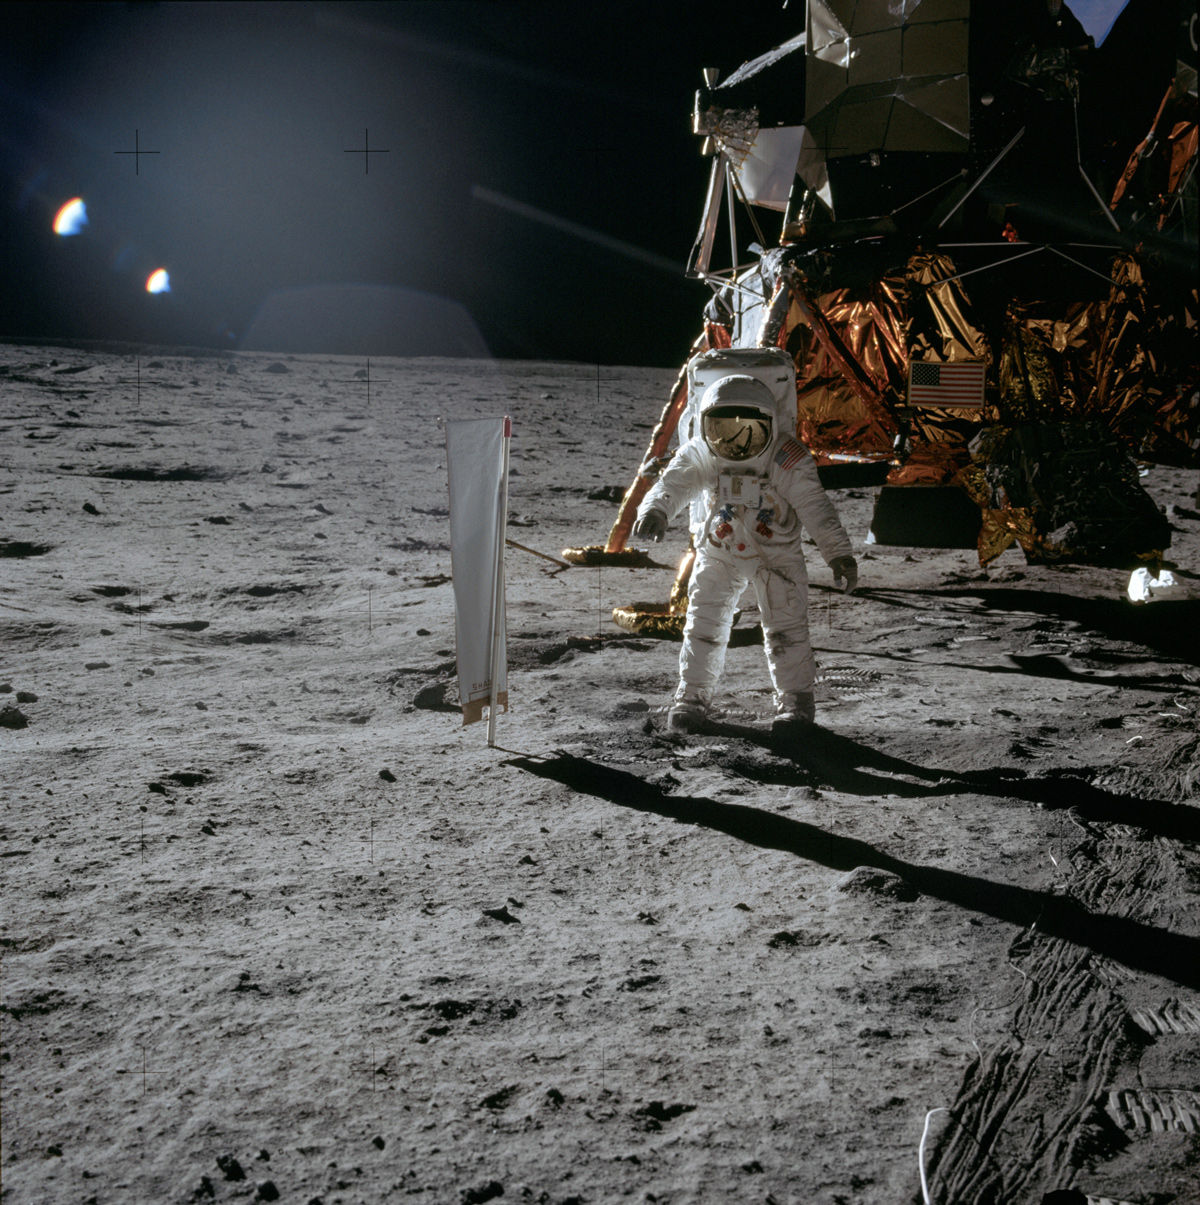 Astronaut and lunar module on surface of moon